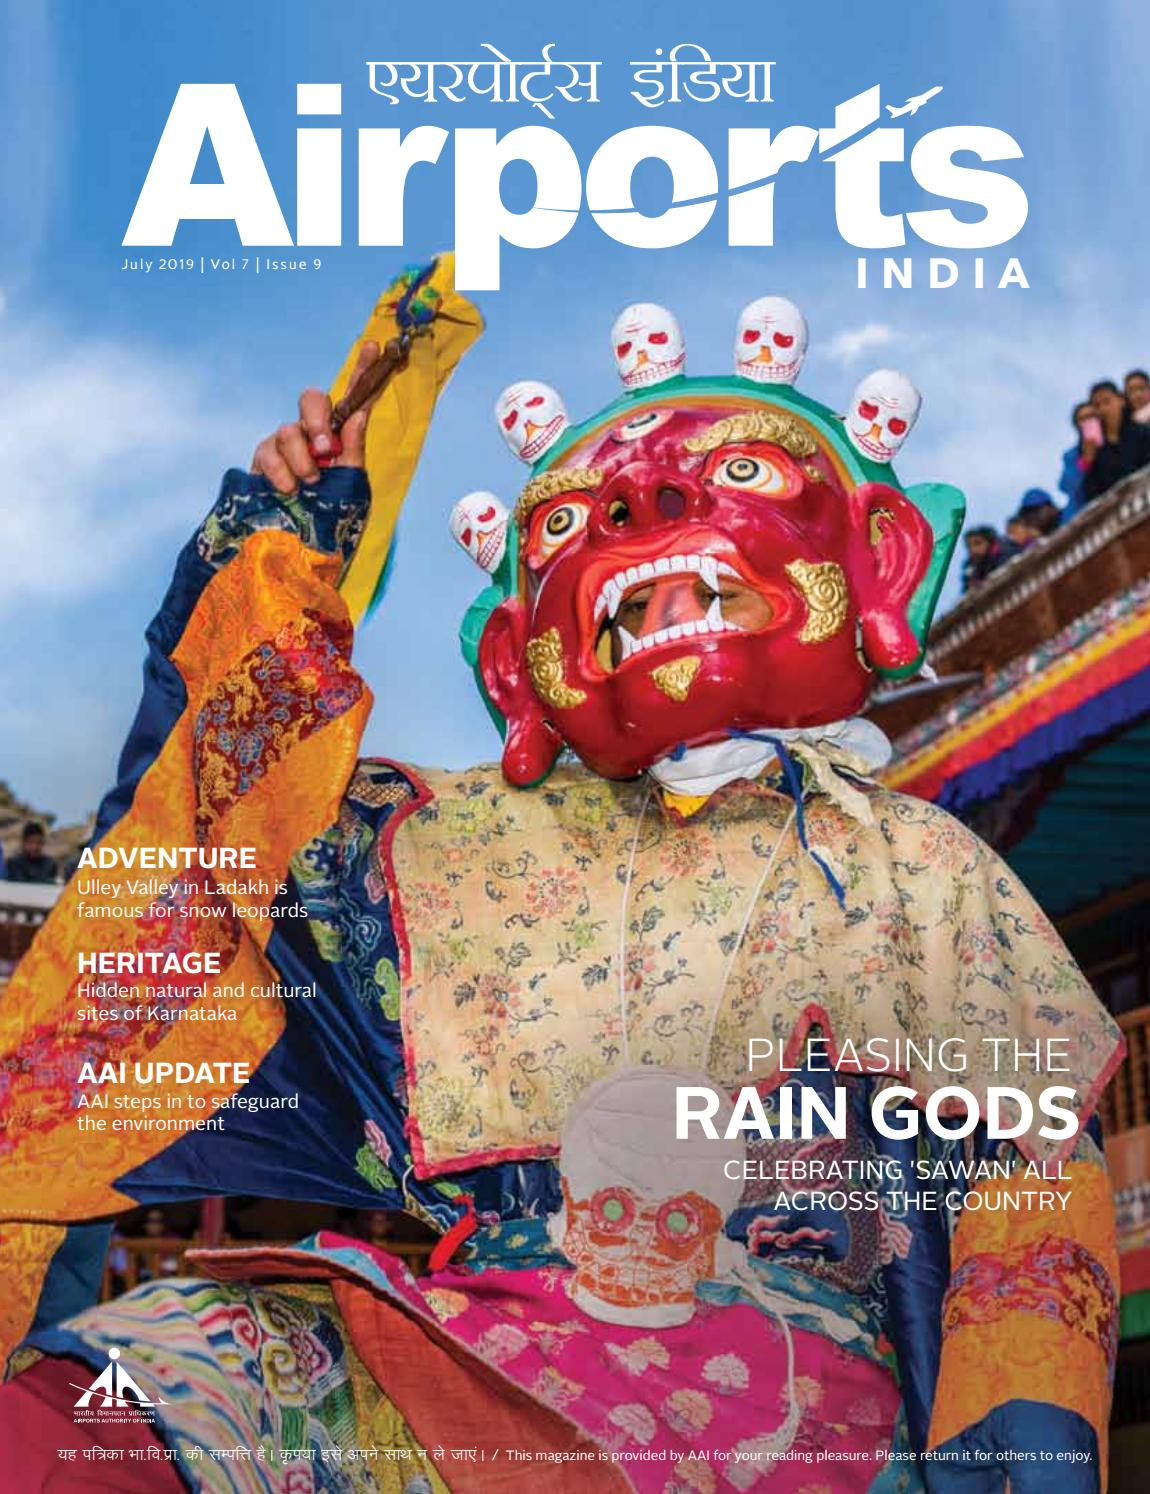 Airports India July 2019 by Maxposure Media Group Pvt Ltd - issuu